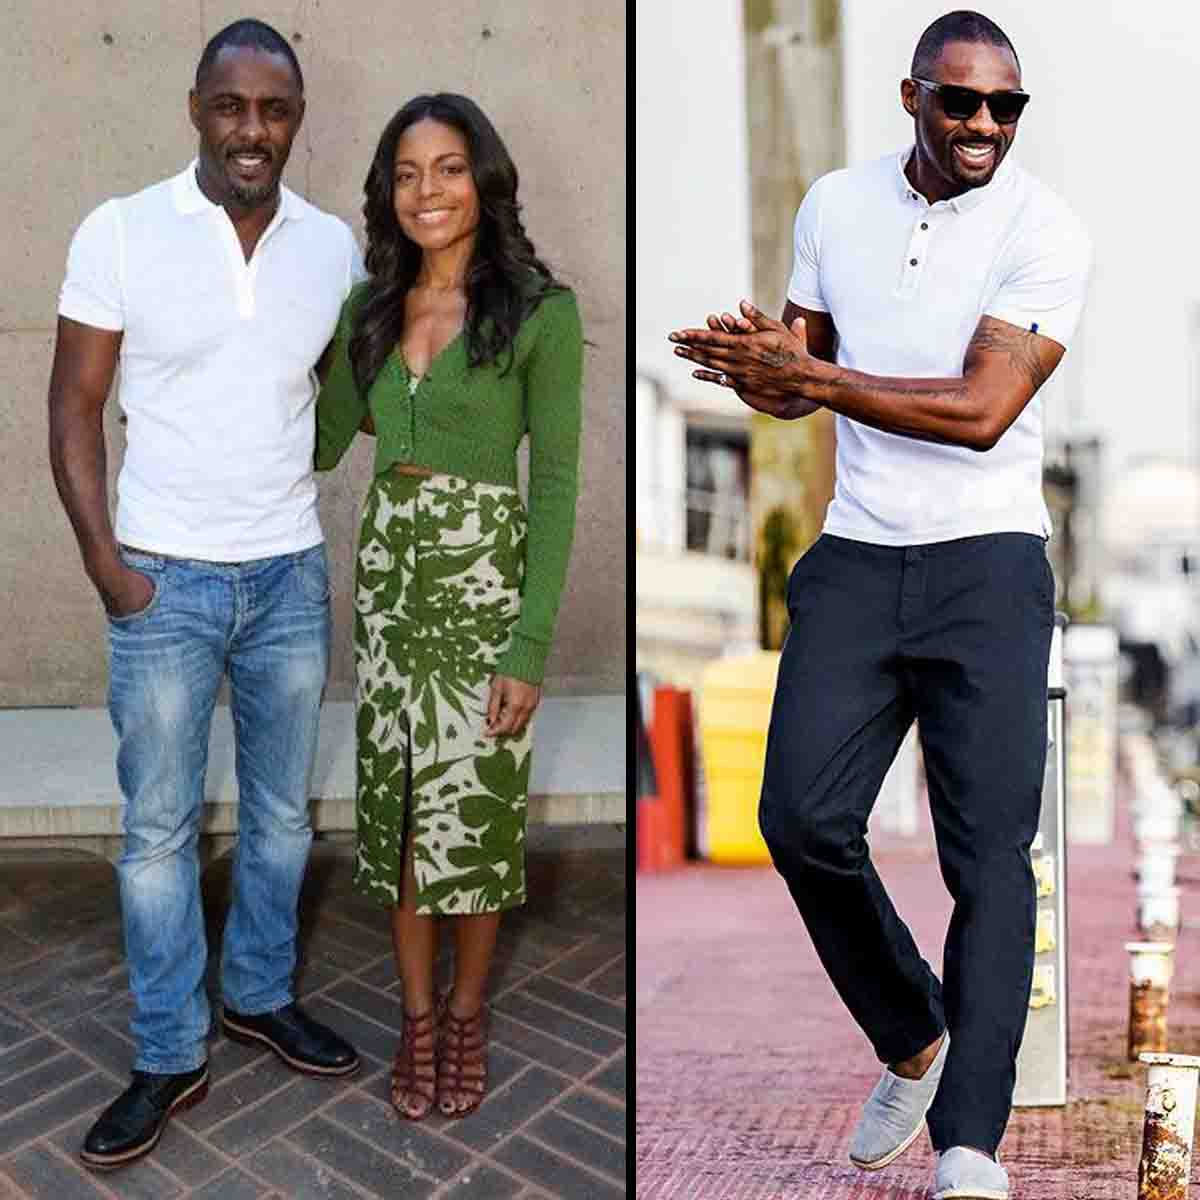 how dark skin tone men should dress up for a date night